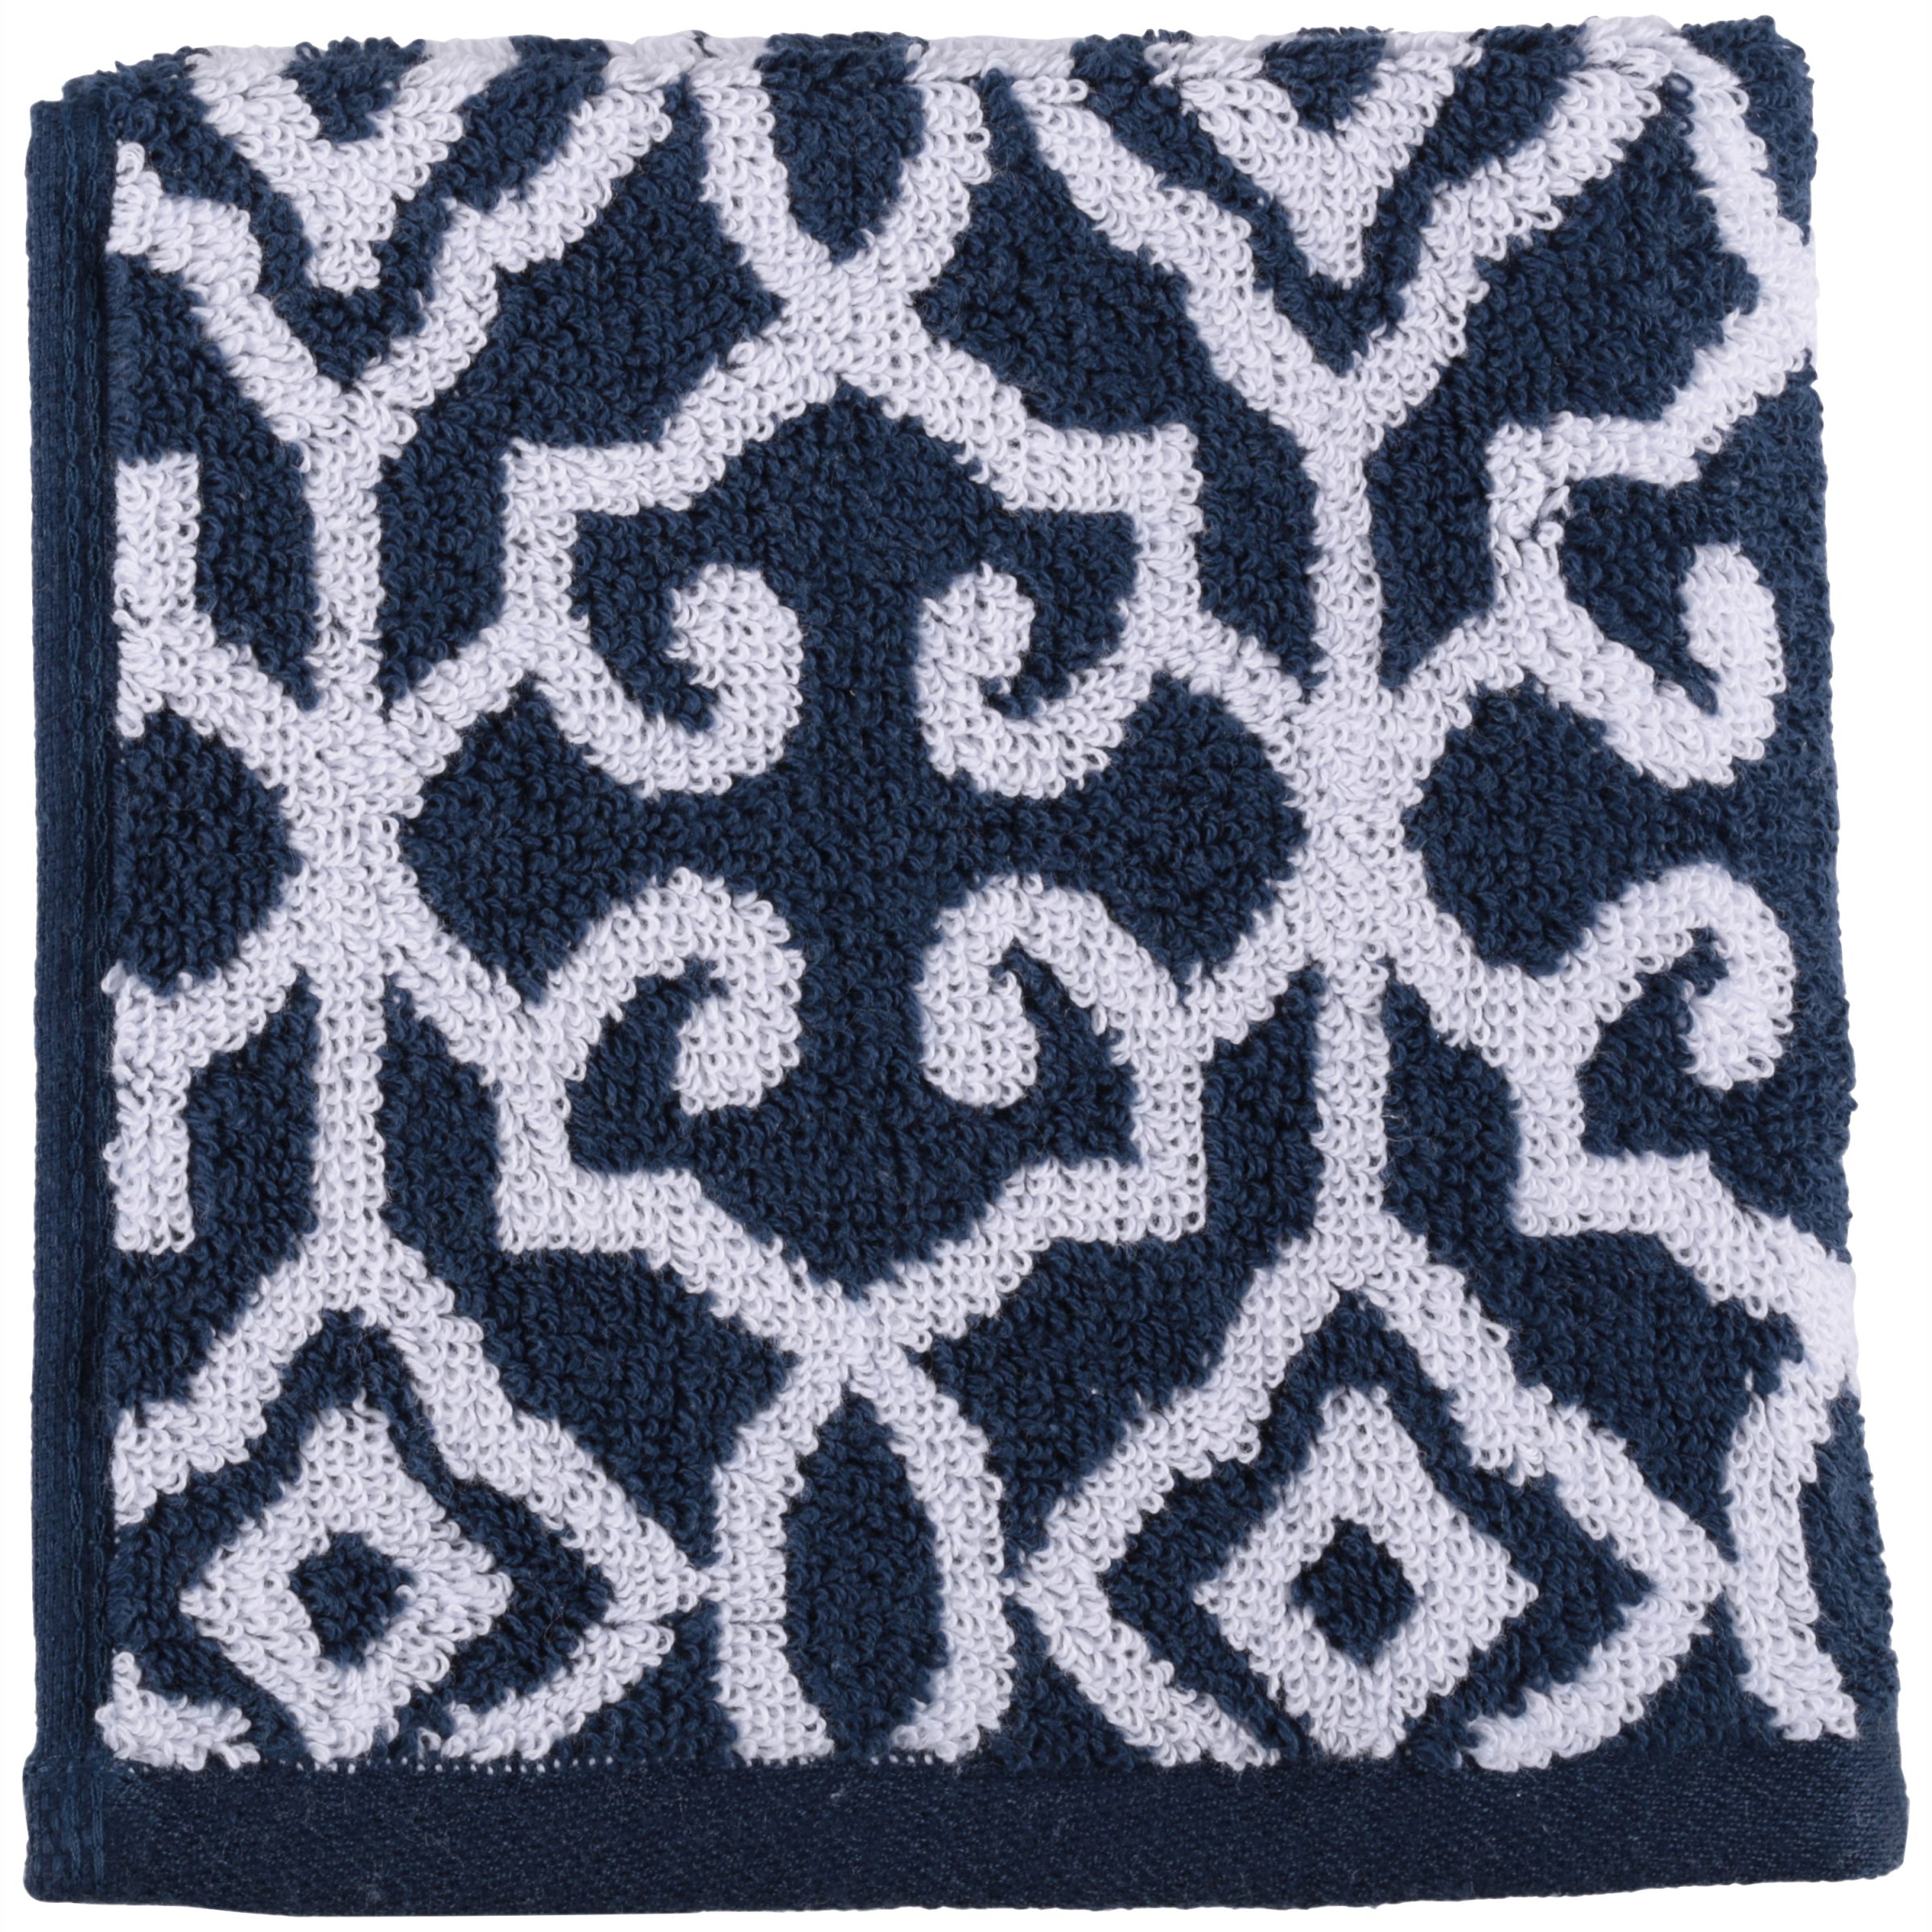 Better Homes & Gardens Thick and Plush Cotton Jacquard Bath Towel Collection